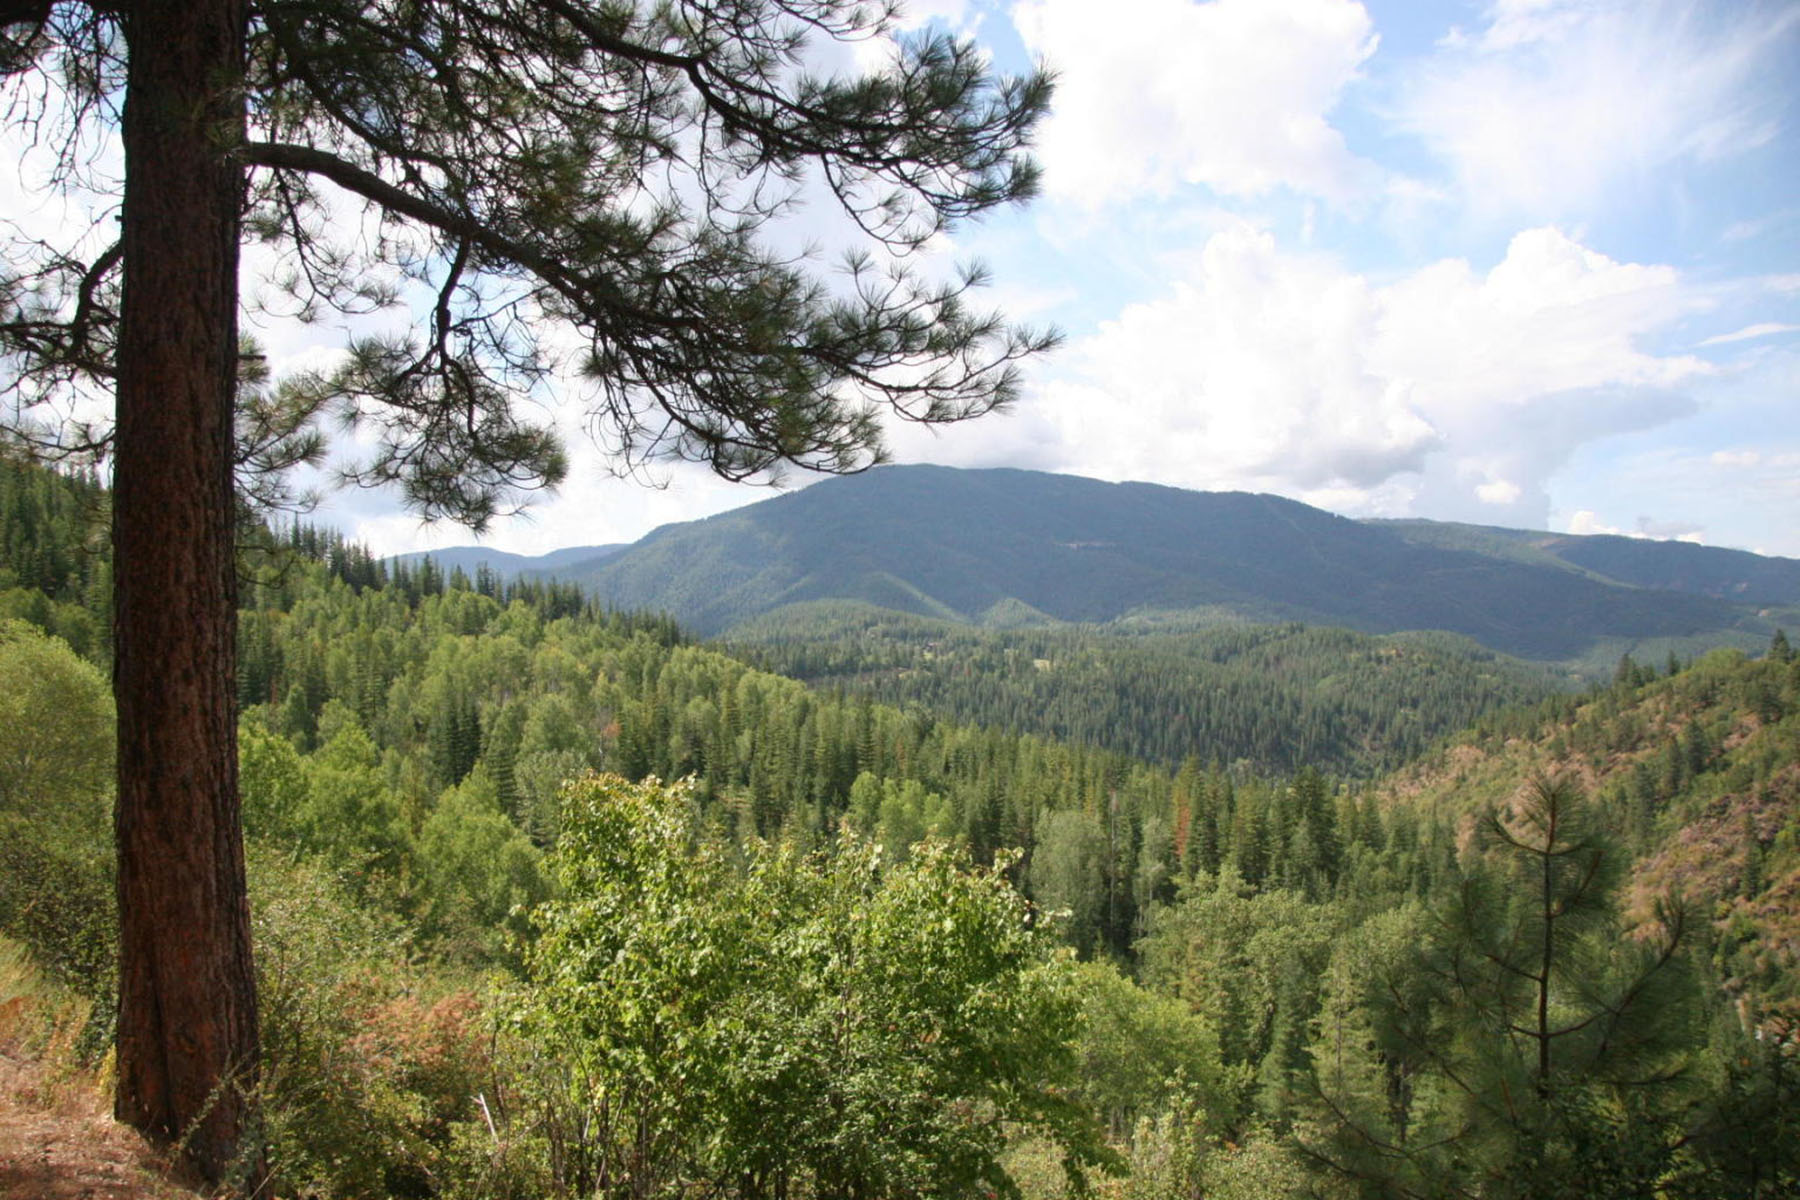 Terreno por un Venta en 149 acres of some of the best land in the Silver Valley NNA Moon Gulch Rd 149 acres Smelterville, Idaho, 83868 Estados Unidos